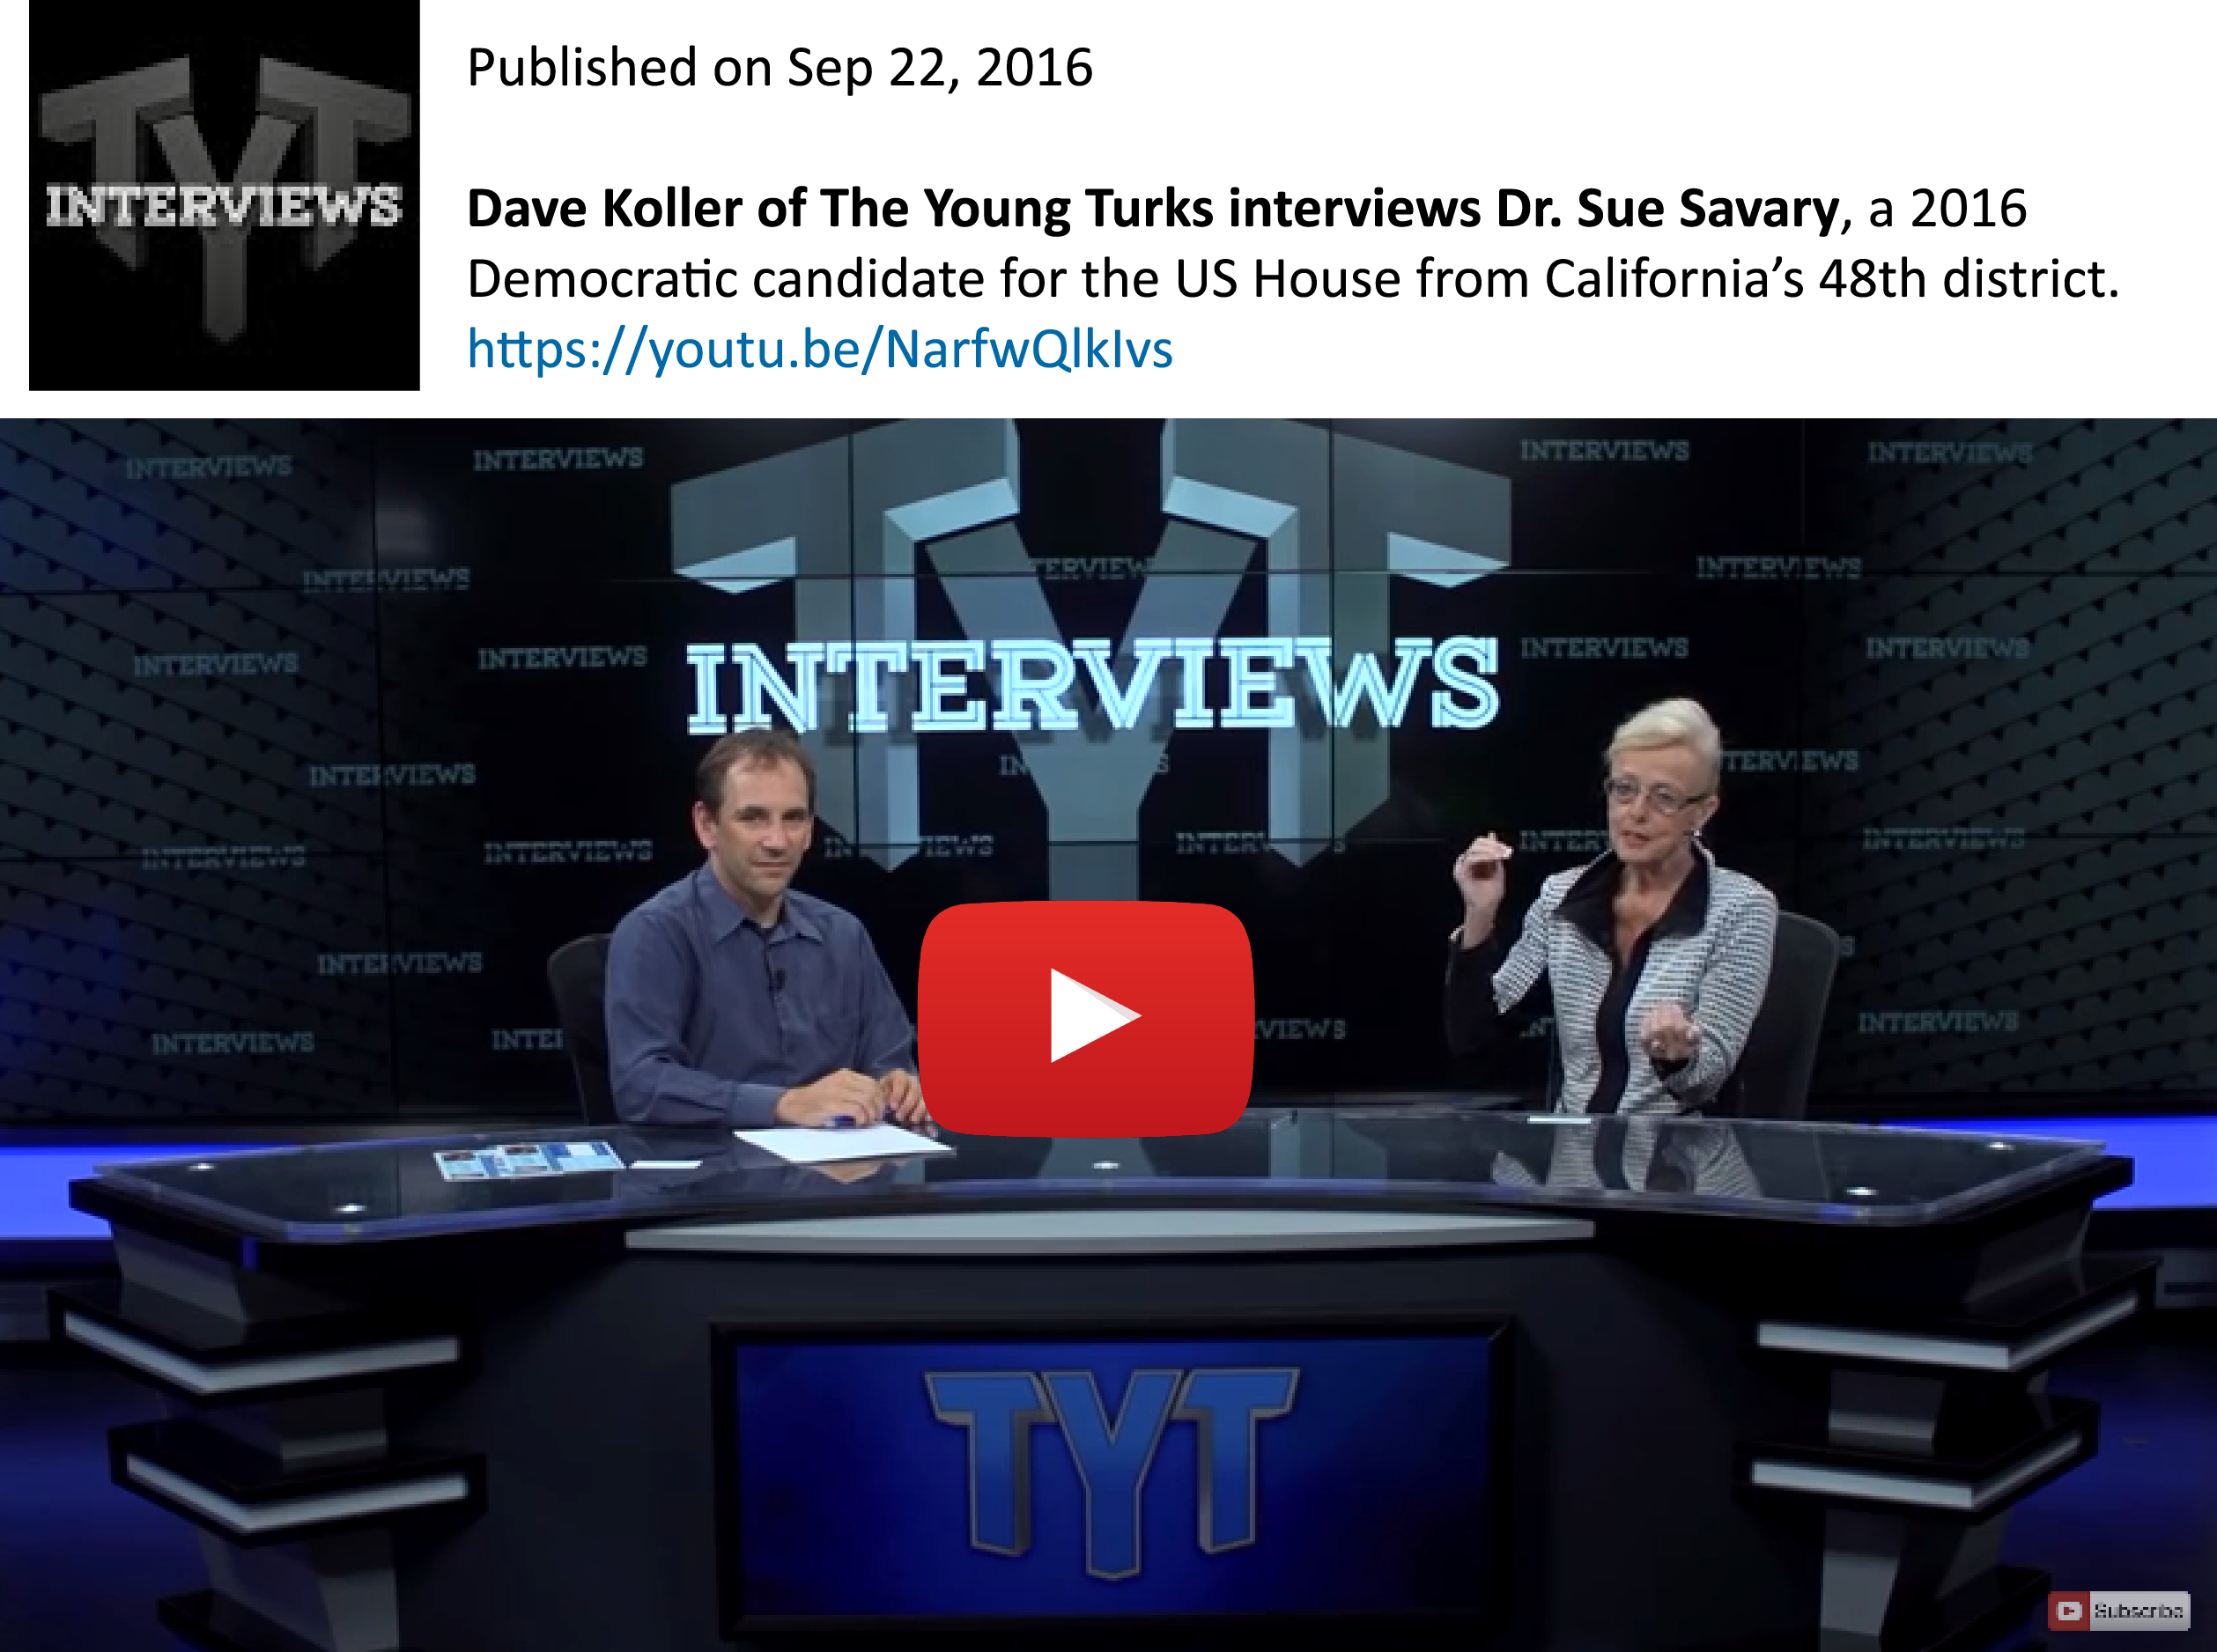 Young_Turks_Video3.png